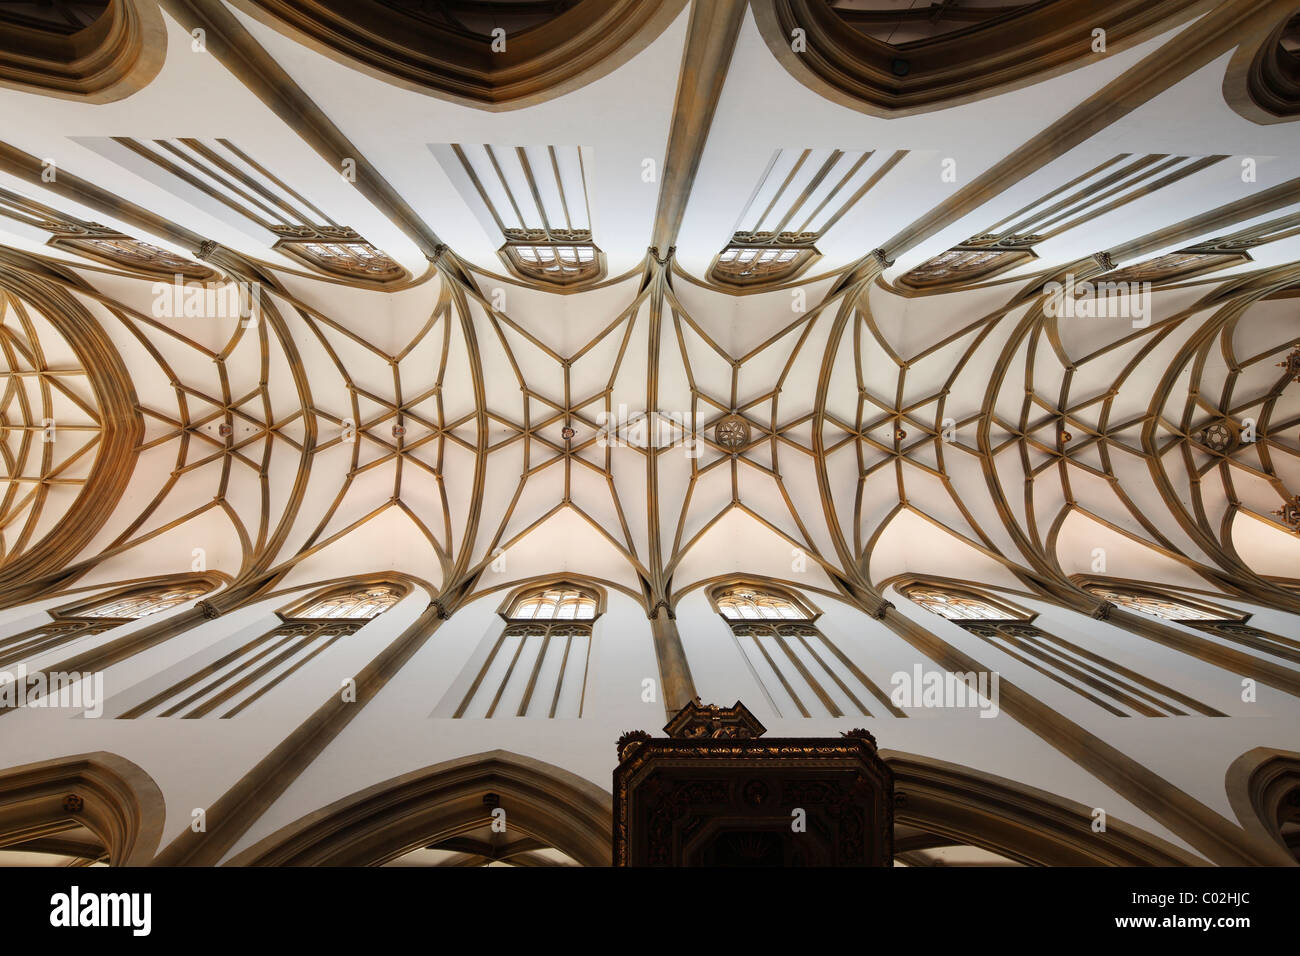 Starry vault of the church ceiling, Basilica of St. Ulrich and Afra, Augsburg, Schwaben, Bavaria, Germany, Europe Stock Photo